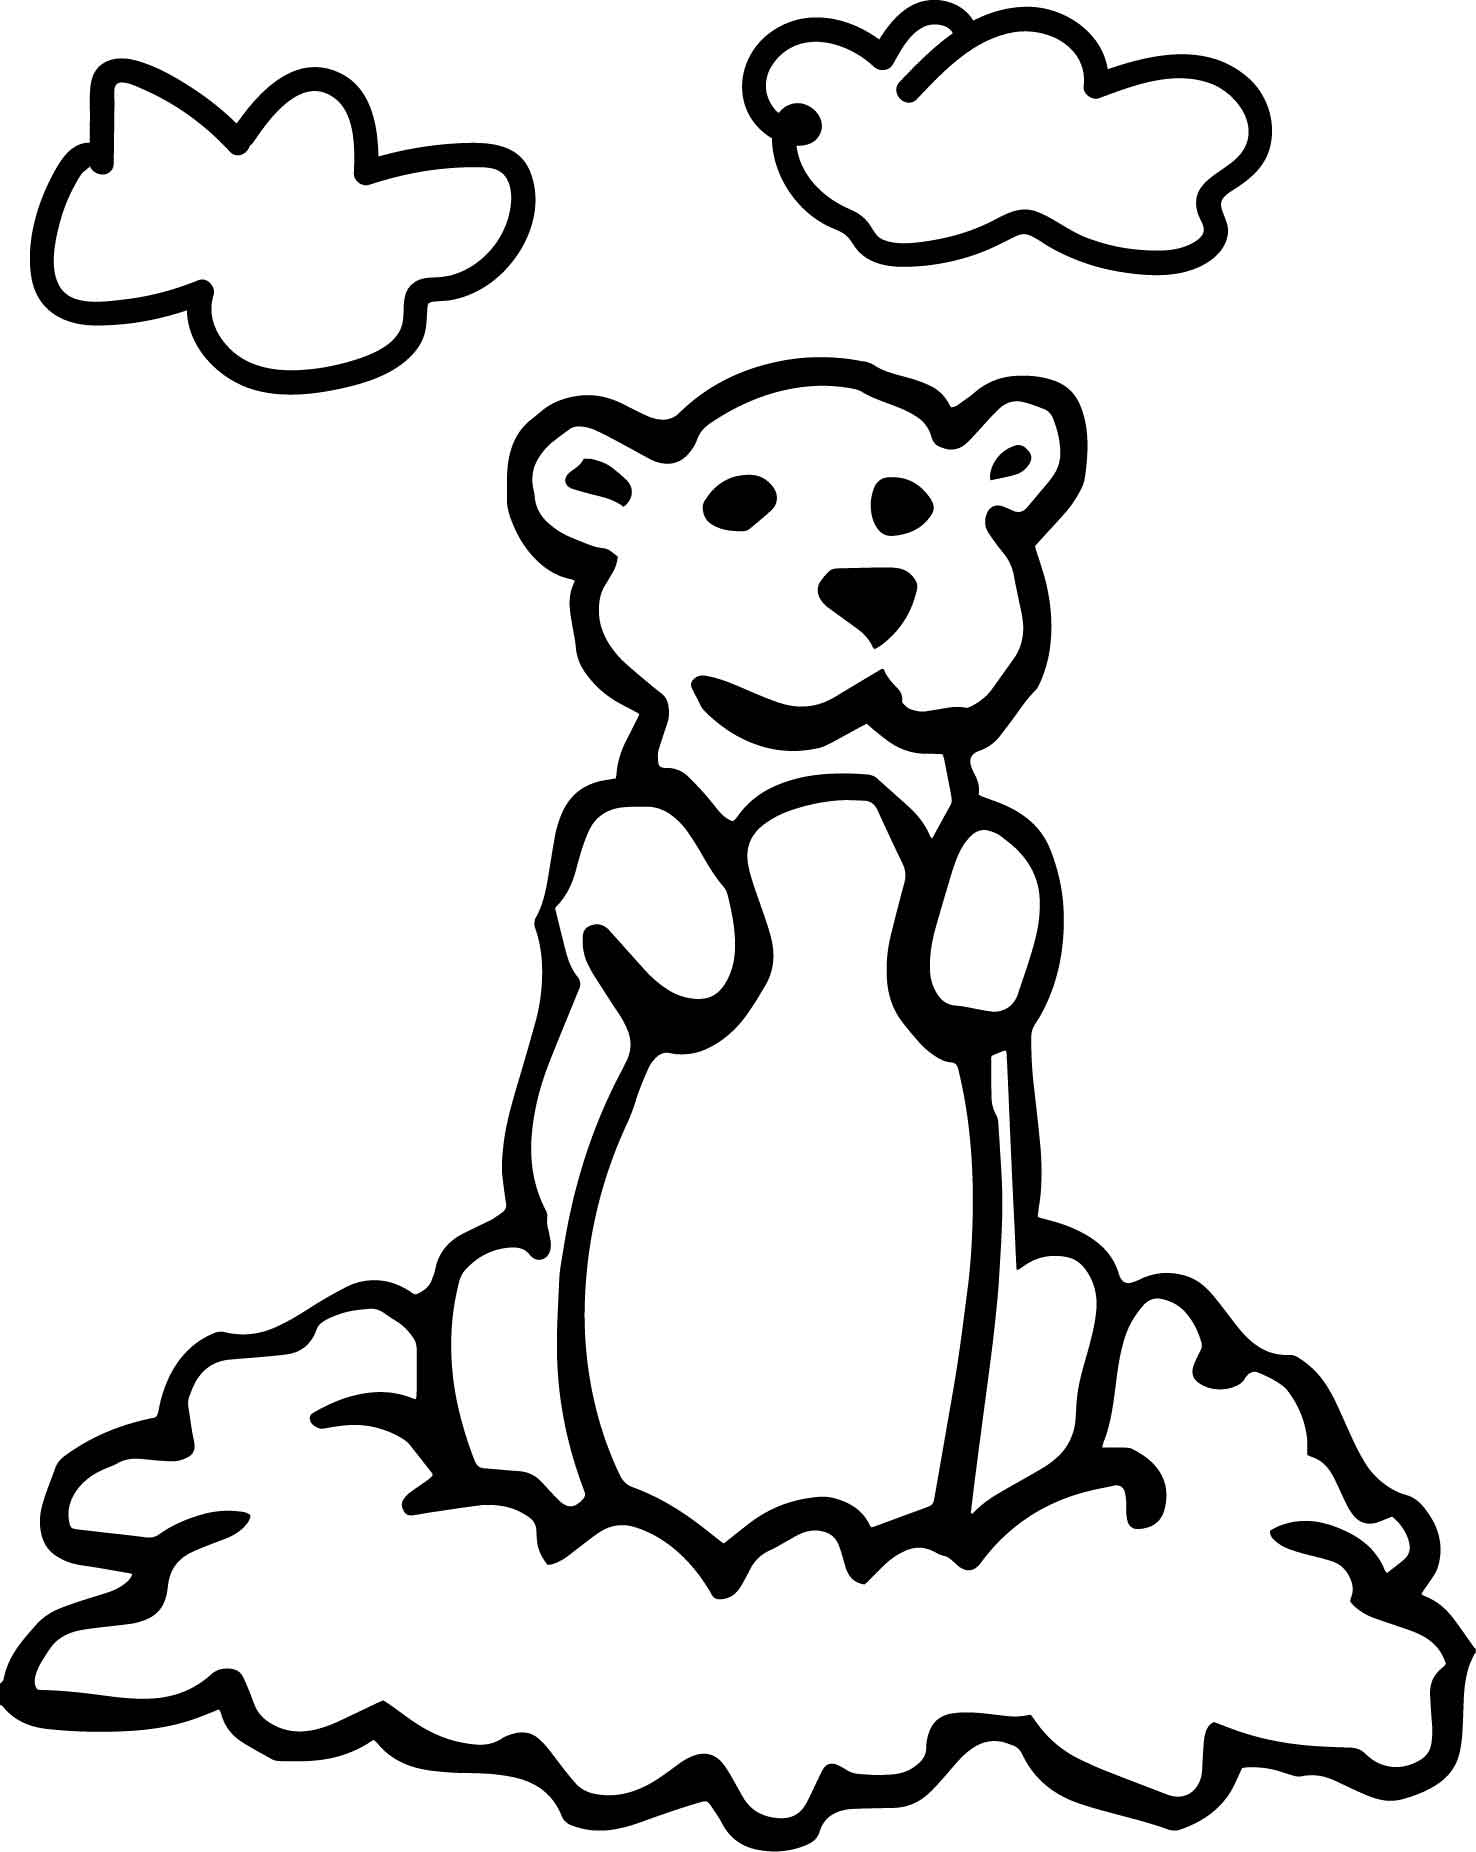 Groundhog Face Coloring Page - Coloring Pages Ideas